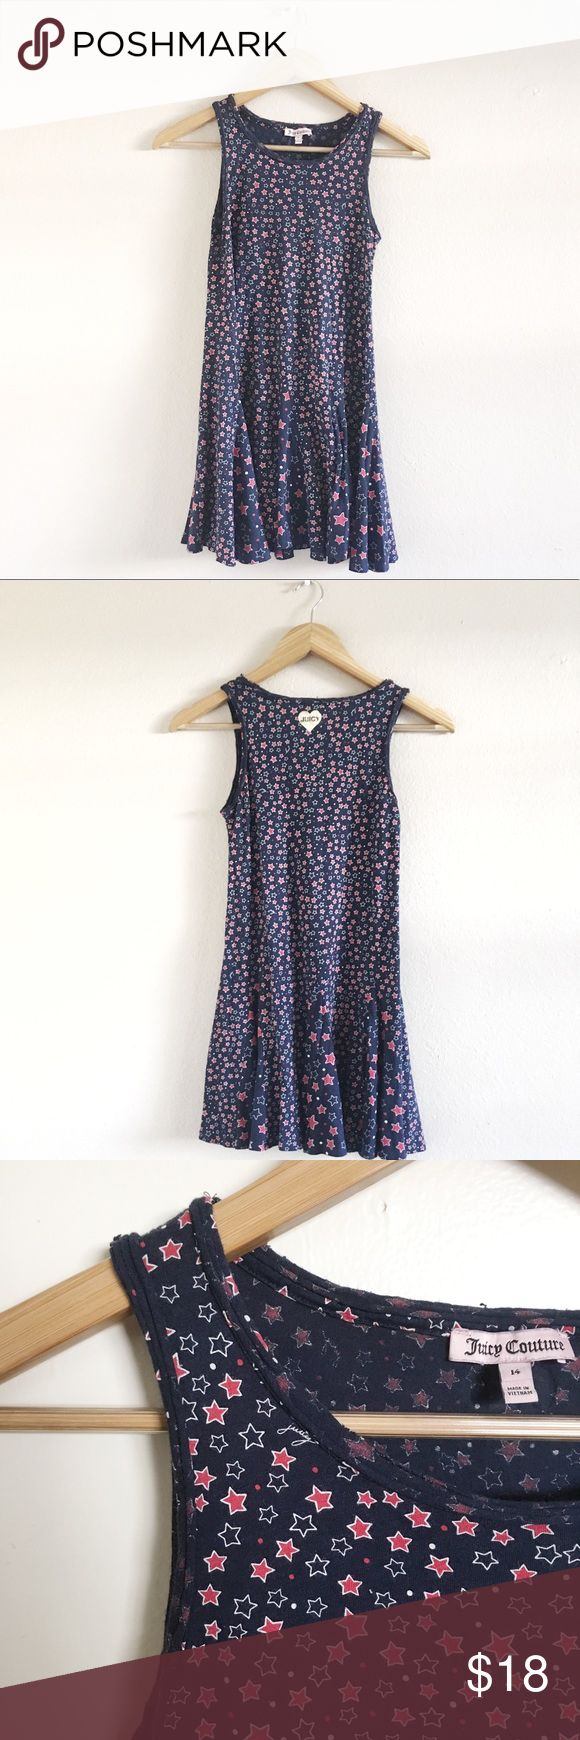 Girls Juicy Couture Dress This will certainly be your little girl's favorite dress. With an all-over stars and dots print, this is the perfect dress for picnics, school, you name it. Style with a denim a jacket and white converse.  •Pre-owned great condition •Pre-distressed on the collar area  💜 Juicy Couture Dresses Casual